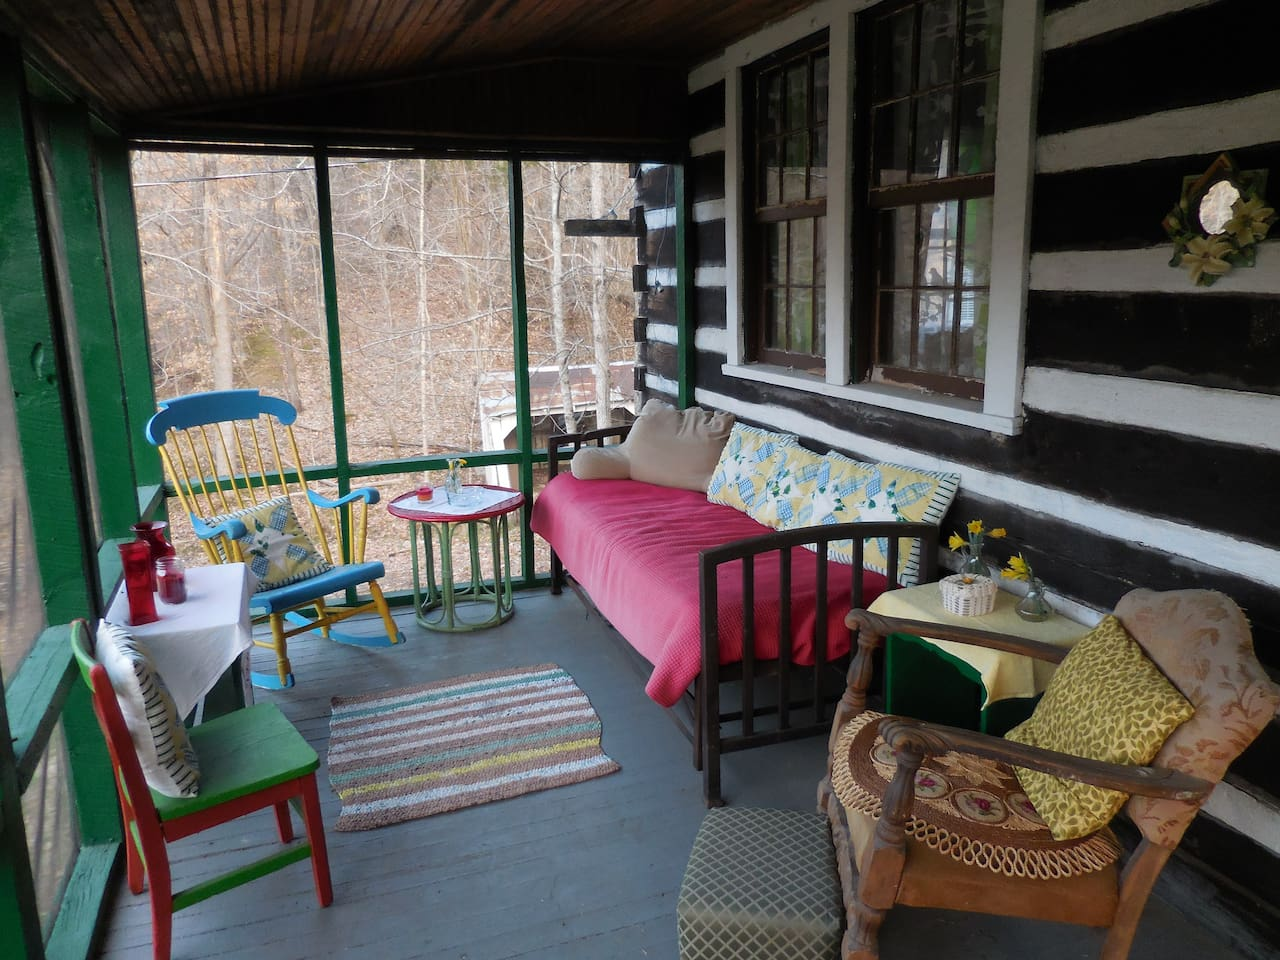 Screened in front porch, great for bird watching and relaxing.